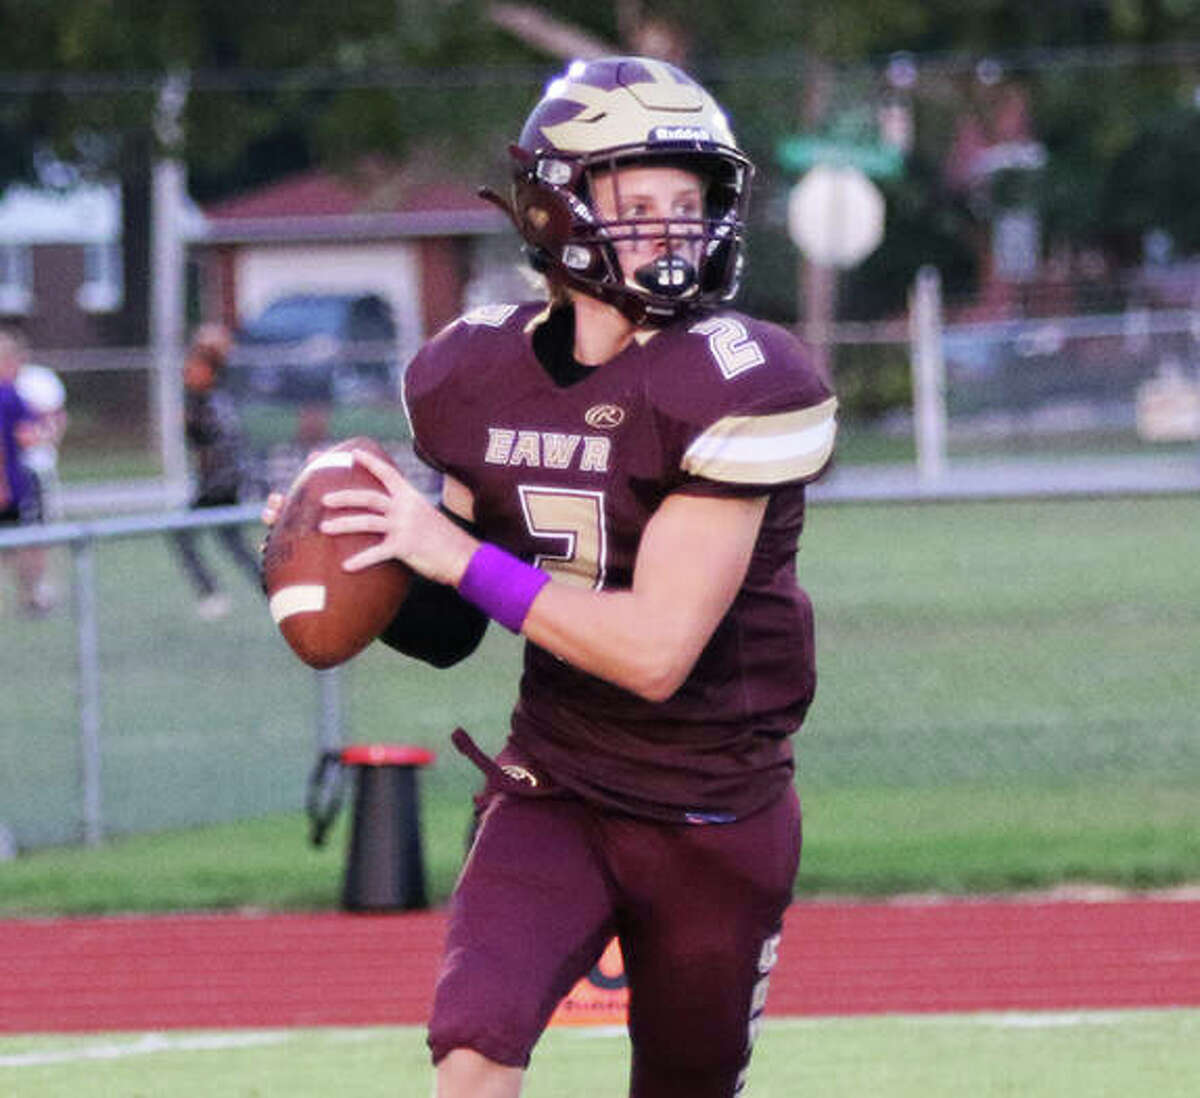 EA-WR quarterback Chase Keshner rolls out and looks for a receiver during a Sept. 3 game against CM at Memorial Stadium in Wood River. The Oilers' loss at home on Friday to Breese Central was their fourth in a row.